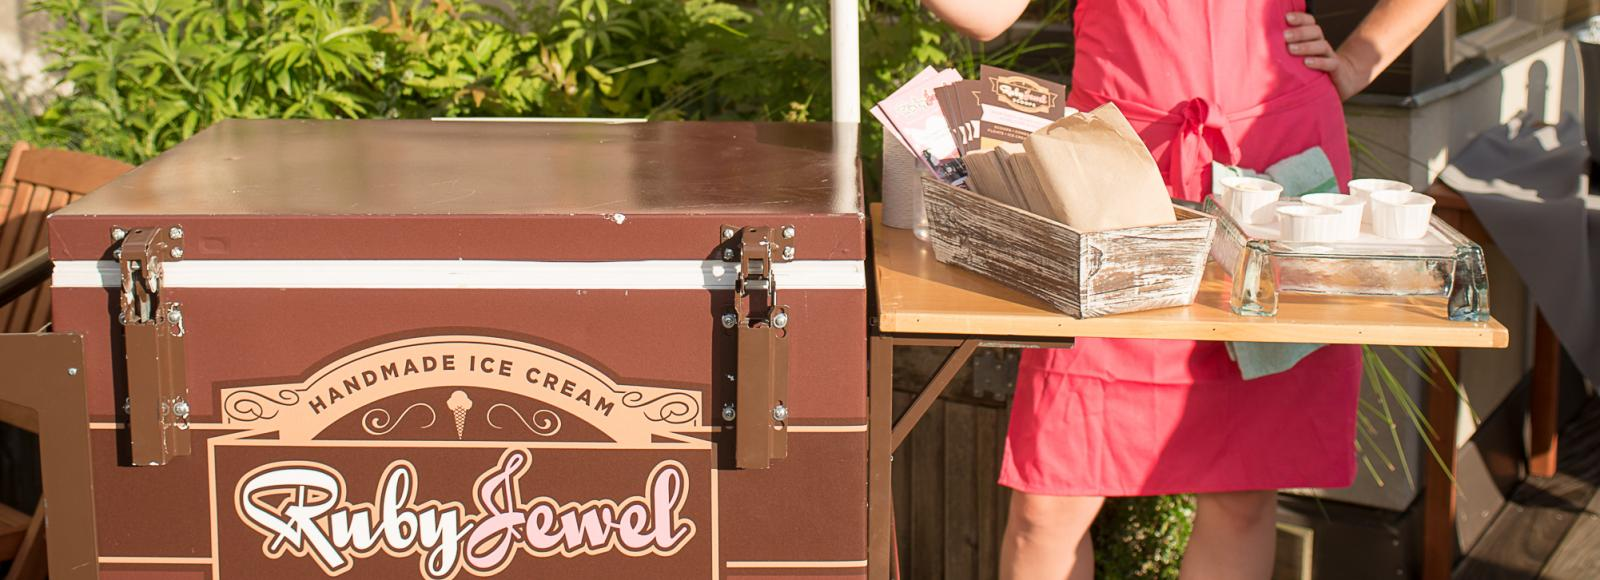 A woman staffs the Ruby Jewel ice cream cart outside under an umbrella